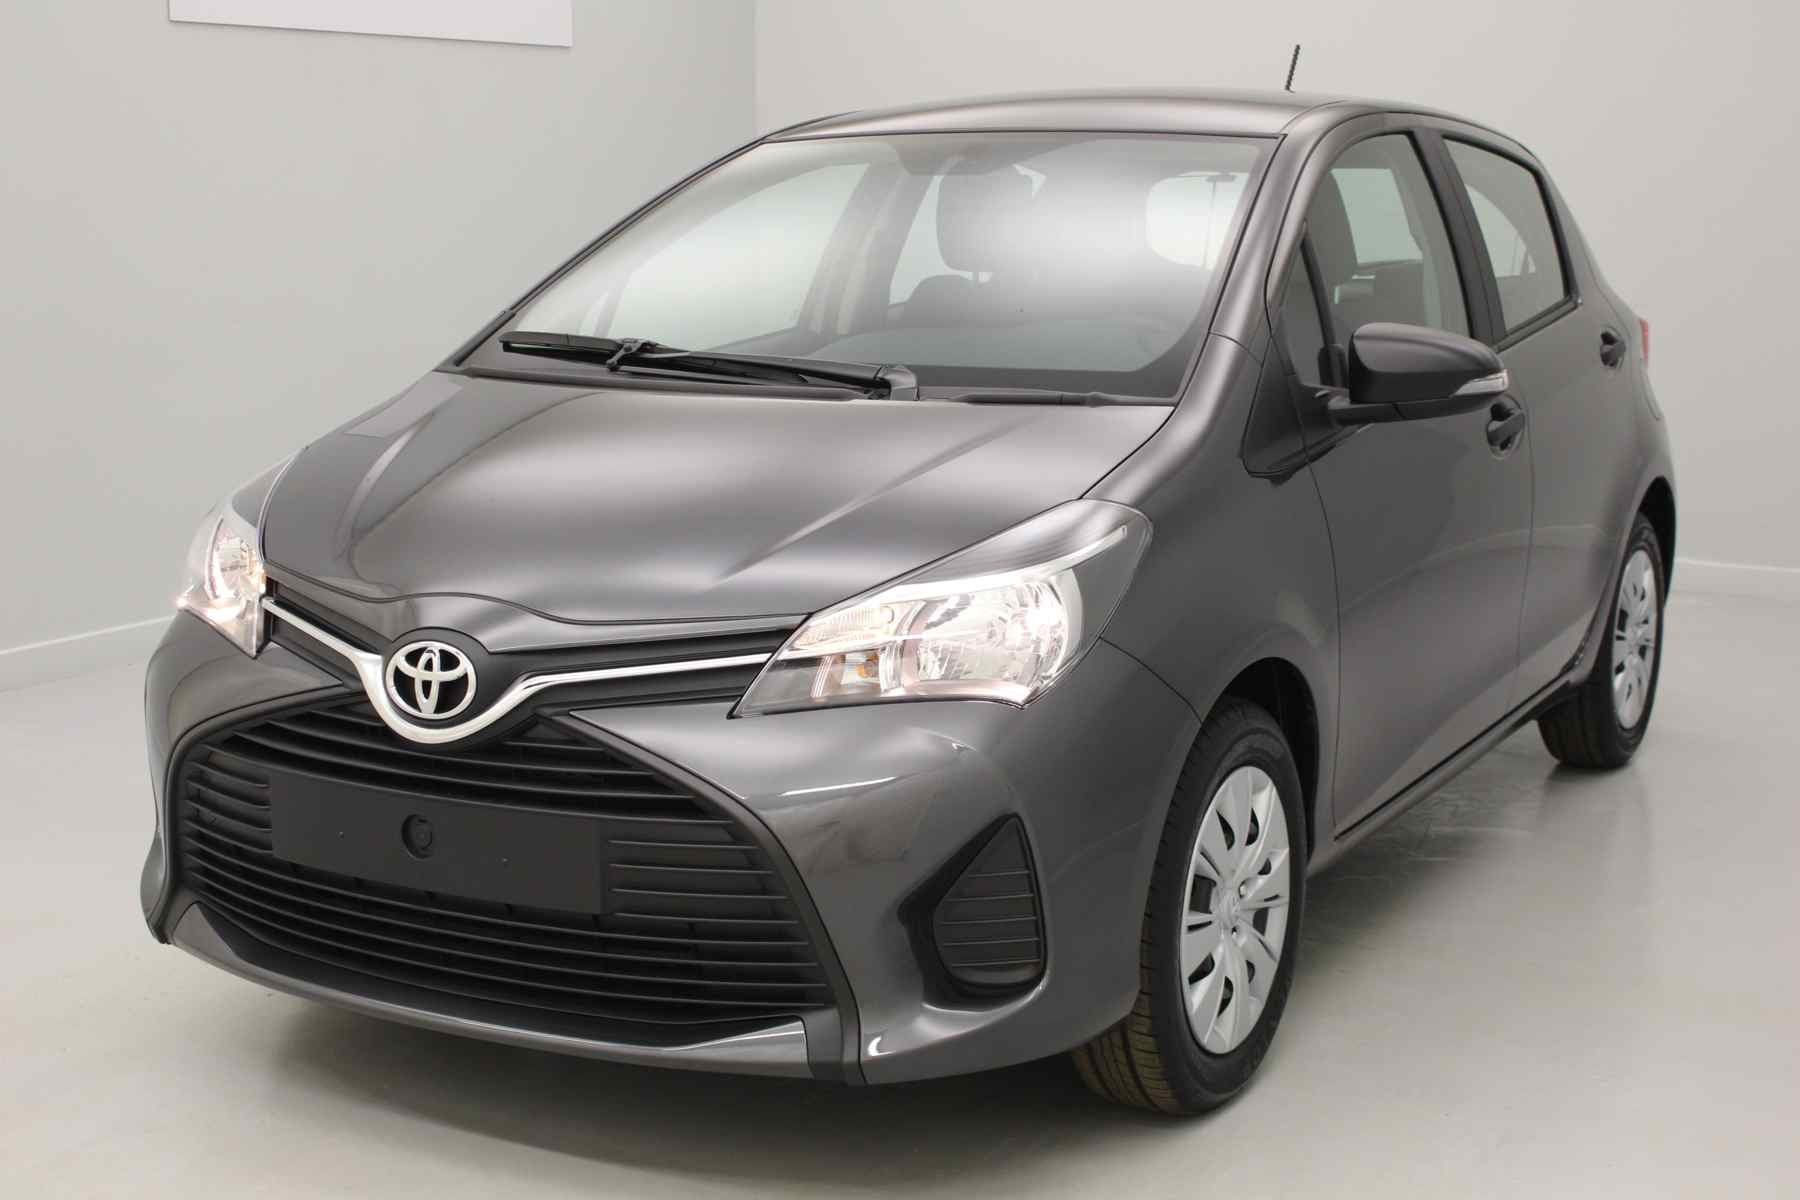 TOYOTA Yaris 69 VVT-i Active Gris Atlas + Climatisation manuelle avec options